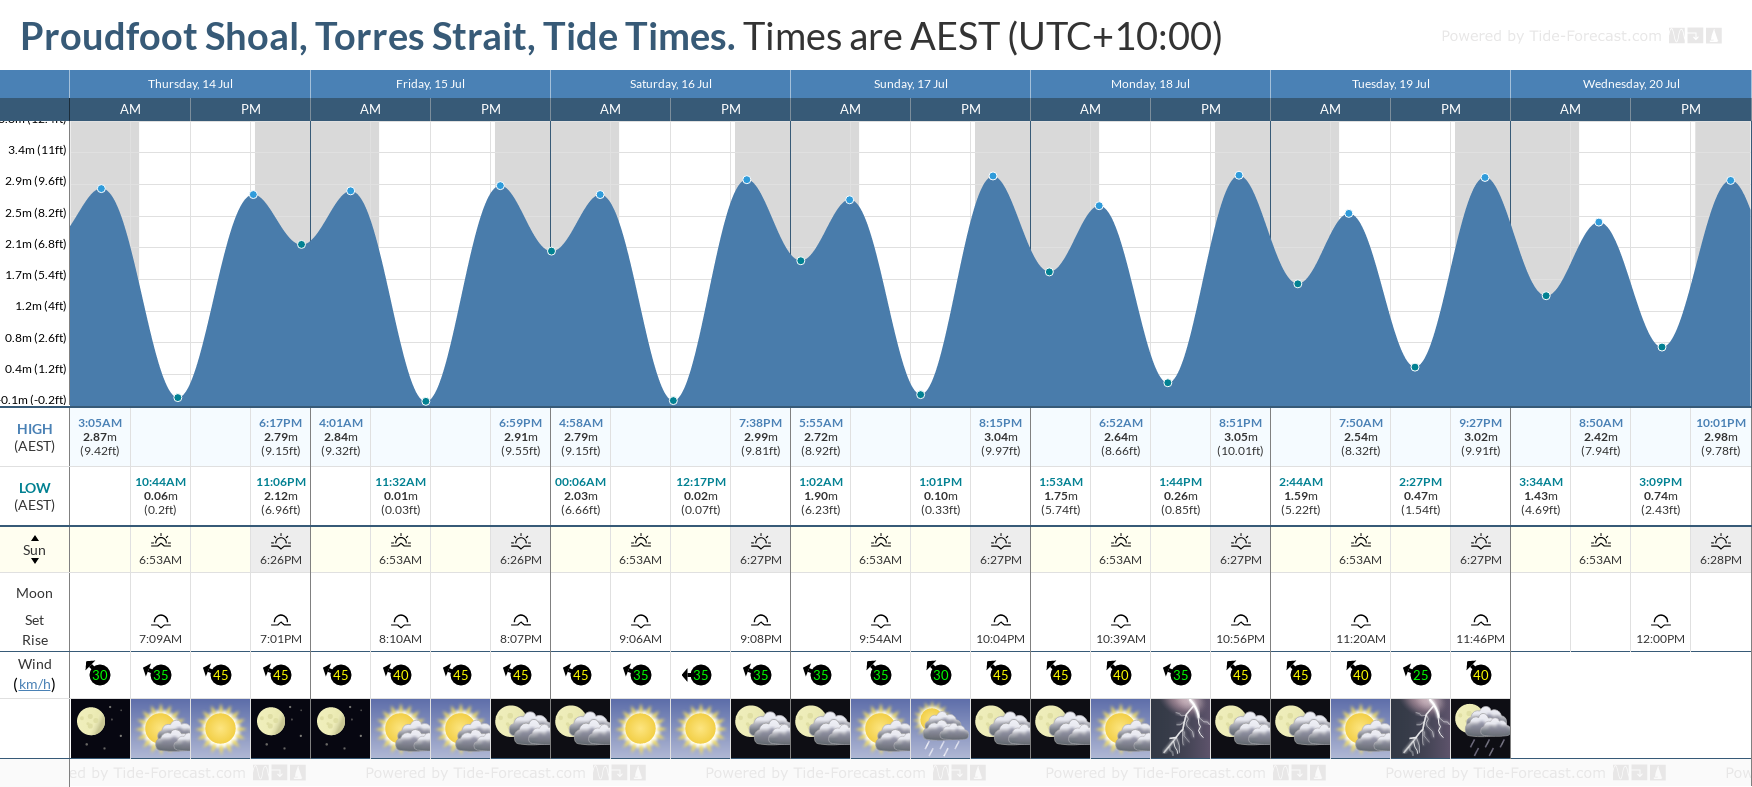 Proudfoot Shoal, Torres Strait Tide Chart including high and low tide tide times for the next 7 days